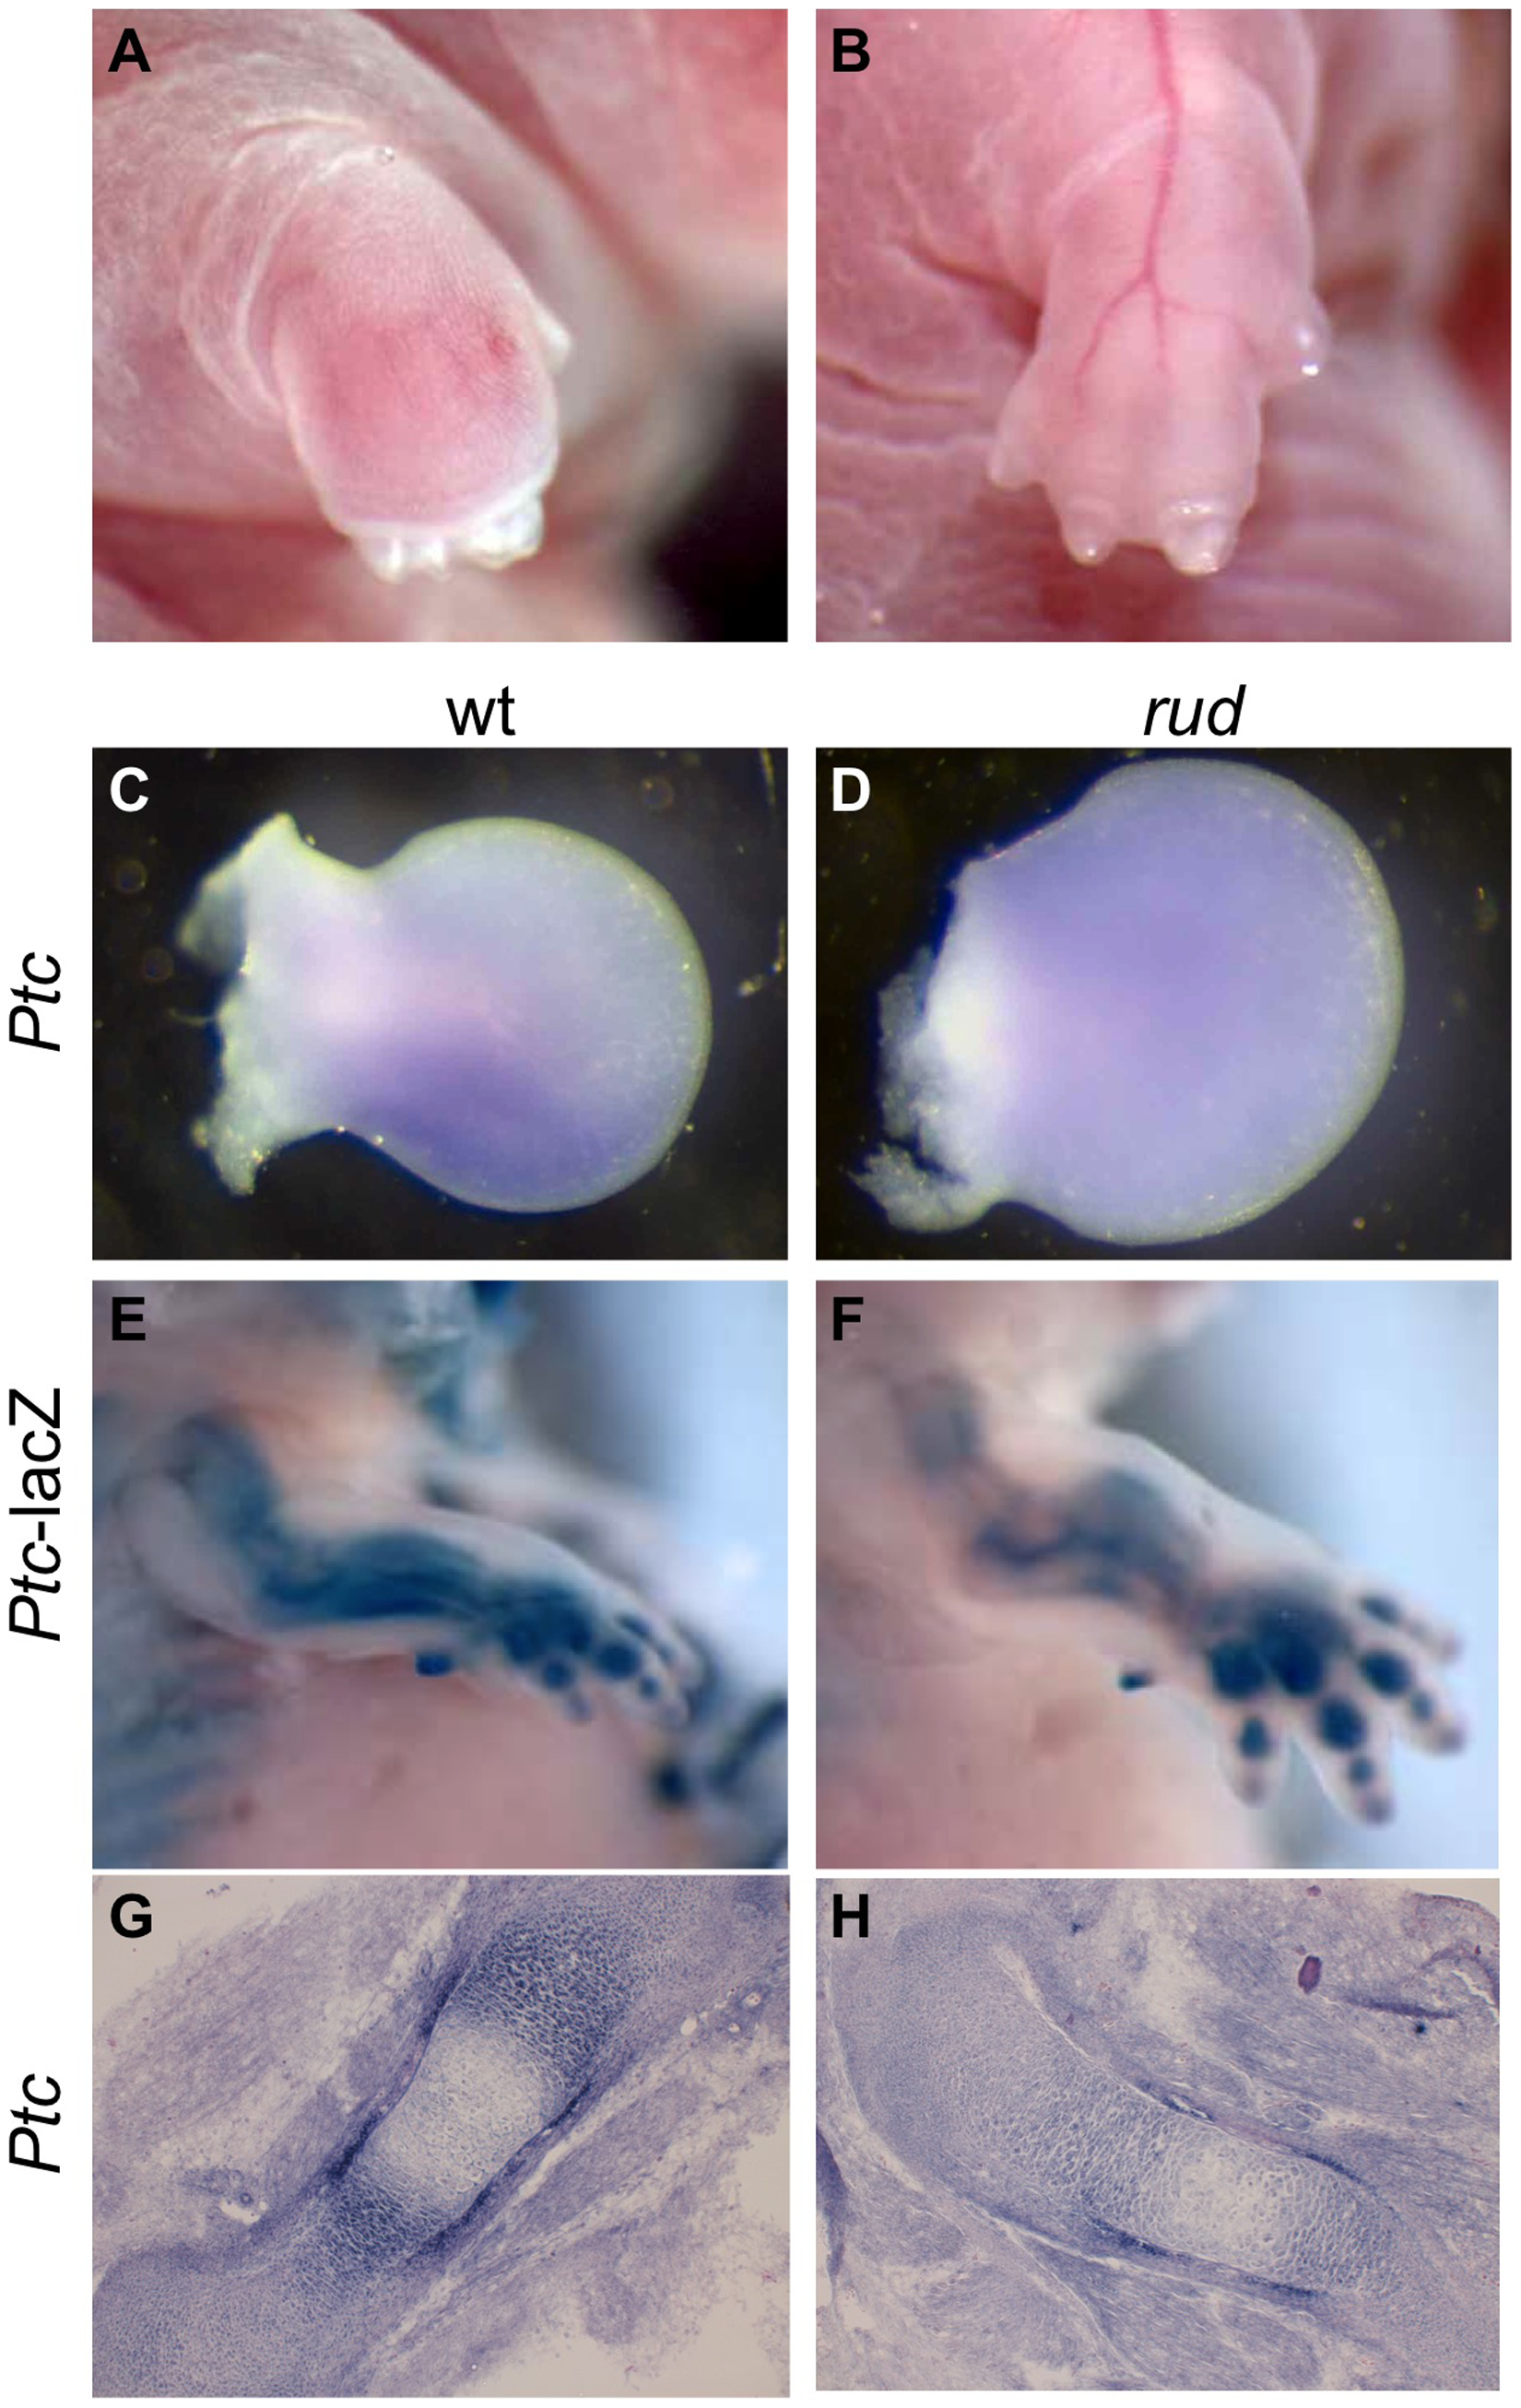 <i>Sonic hedgehog</i> signal transduction is abnormal in <i>rudolph</i> skeletal elements.